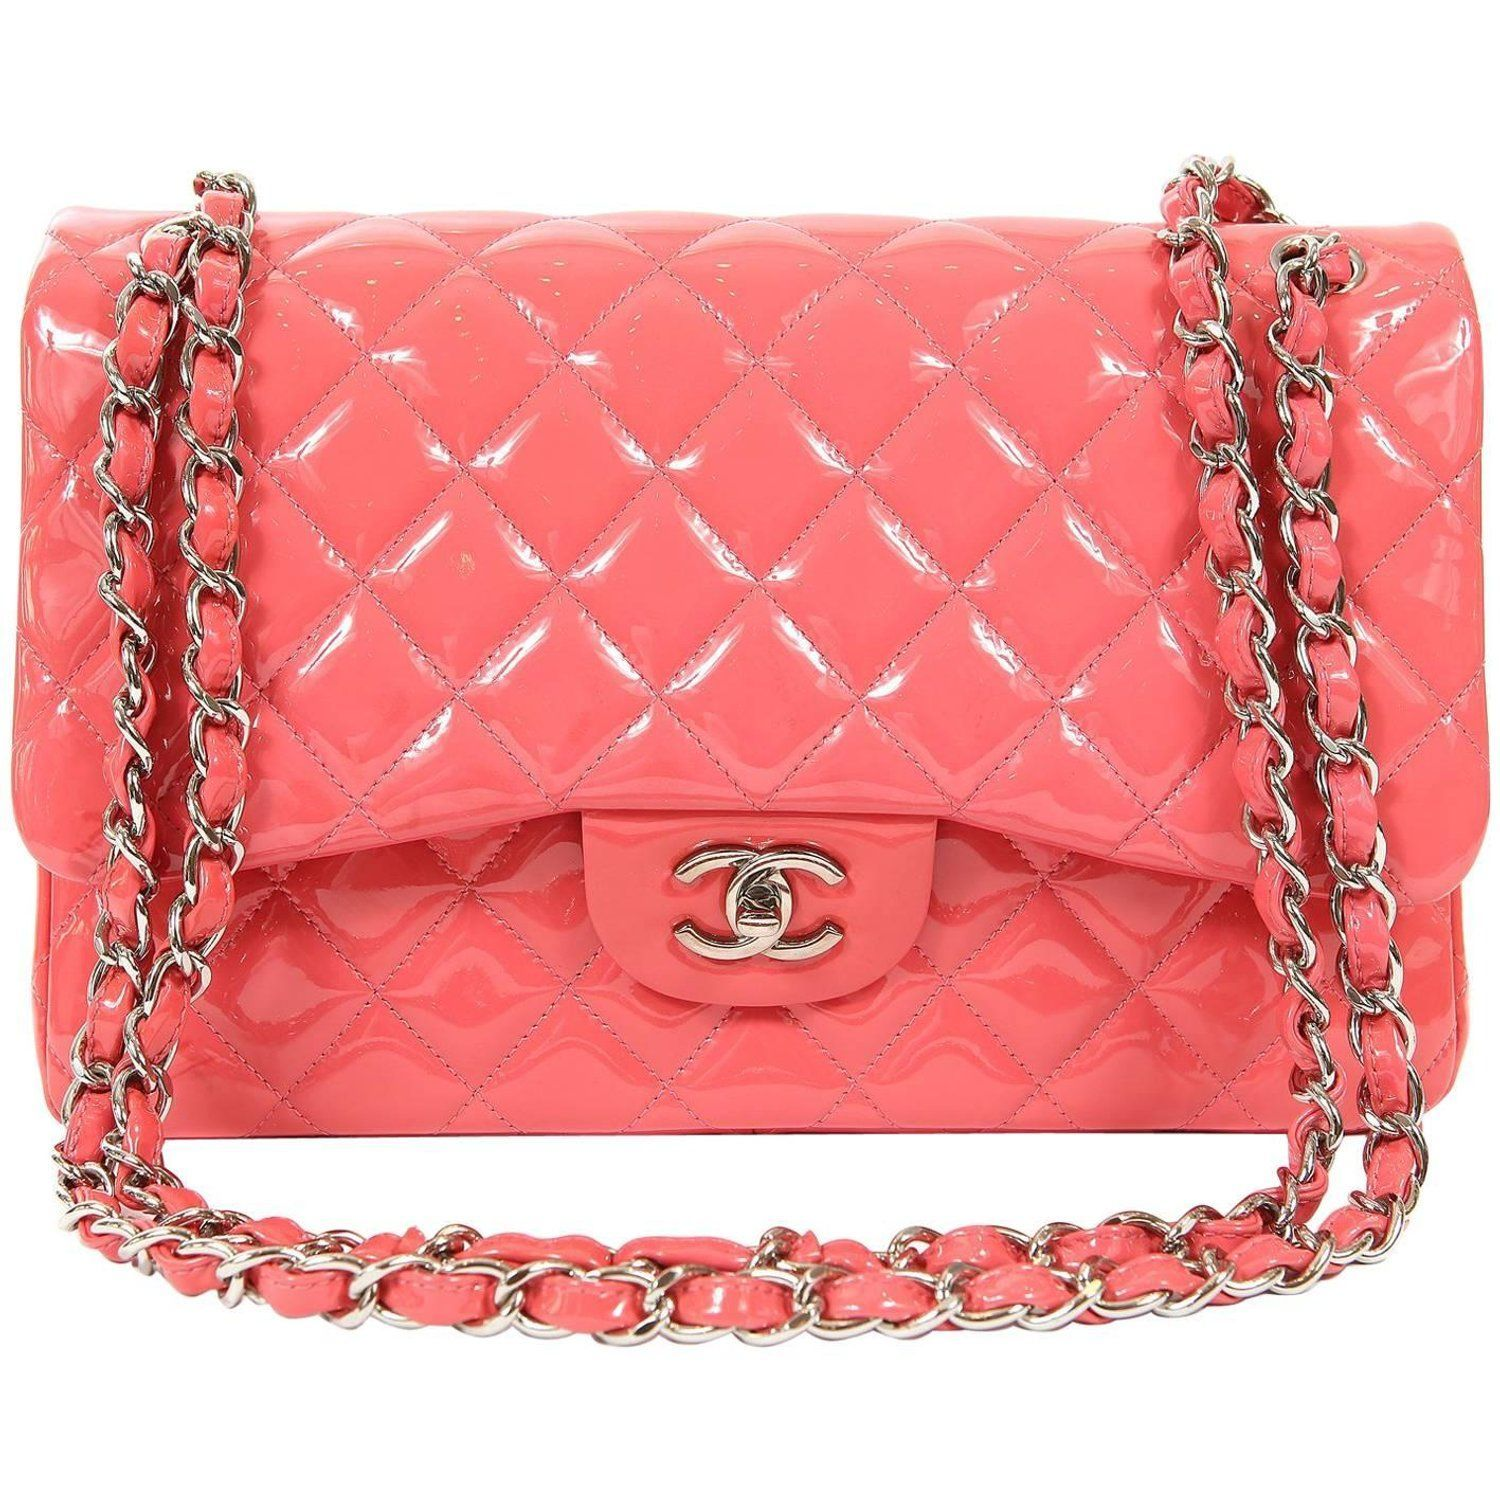 c17cbae2abba Chanel Pink Patent Leather Double Flap Jumbo Classic Bag with SHW For Sale  at 1stdibs